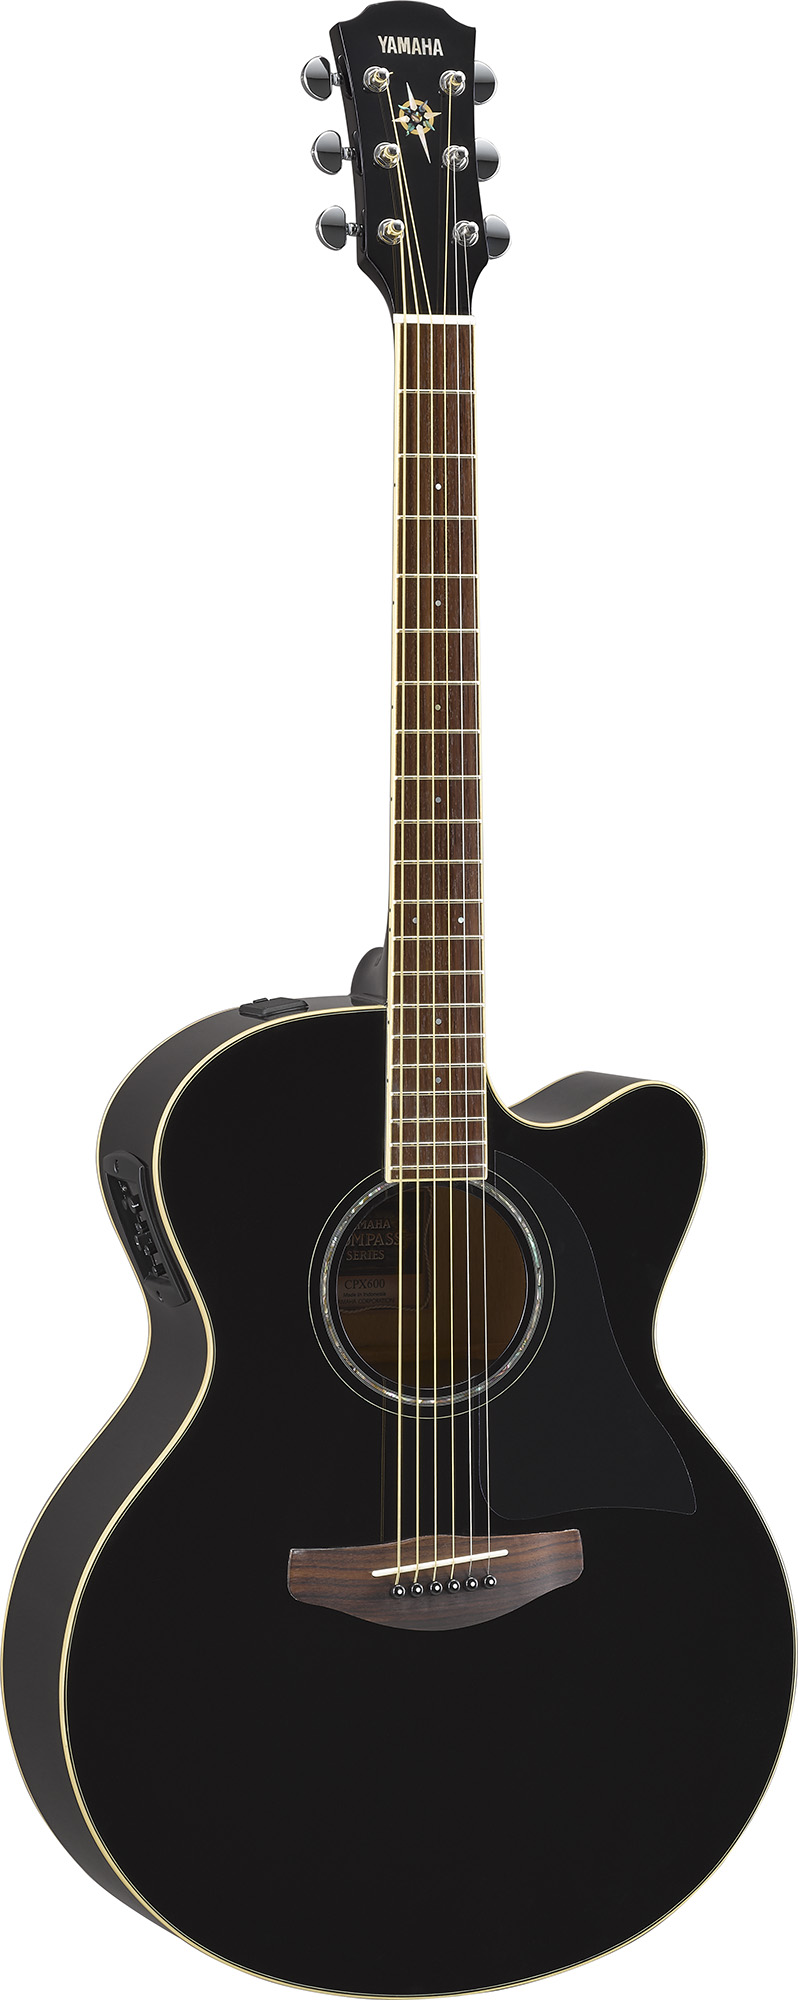 yamaha announces new apx600 and cpx600 acoustic electric guitars guitar girl magazine. Black Bedroom Furniture Sets. Home Design Ideas